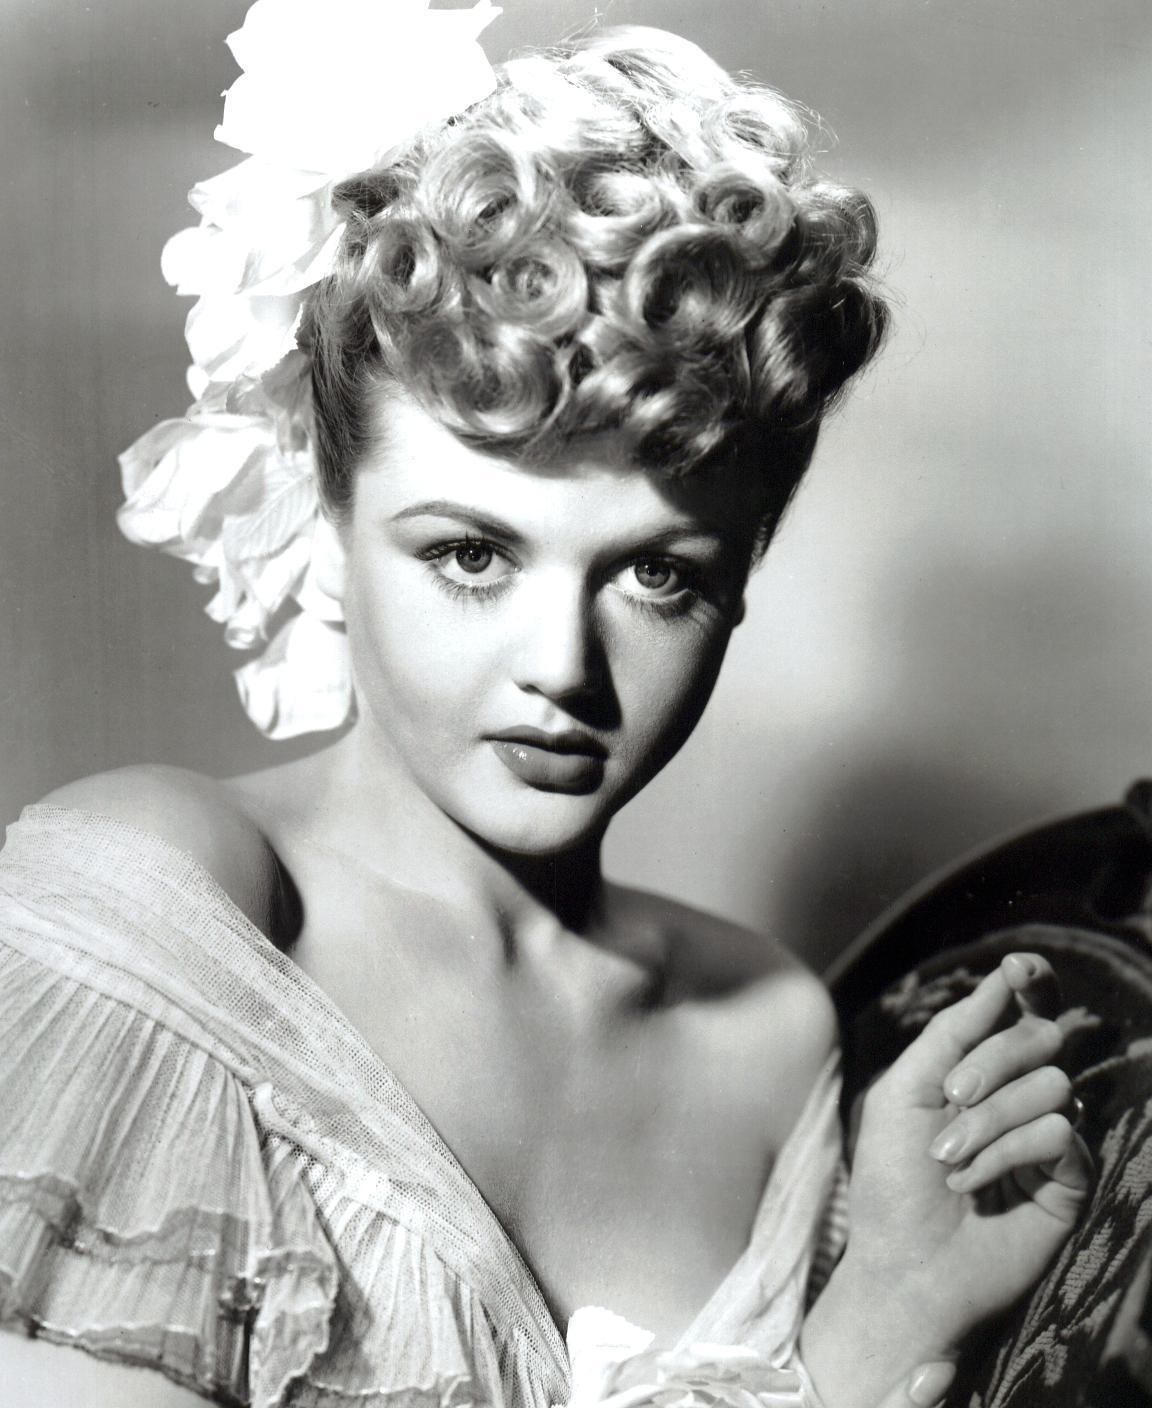 Angela Lansbury young photos